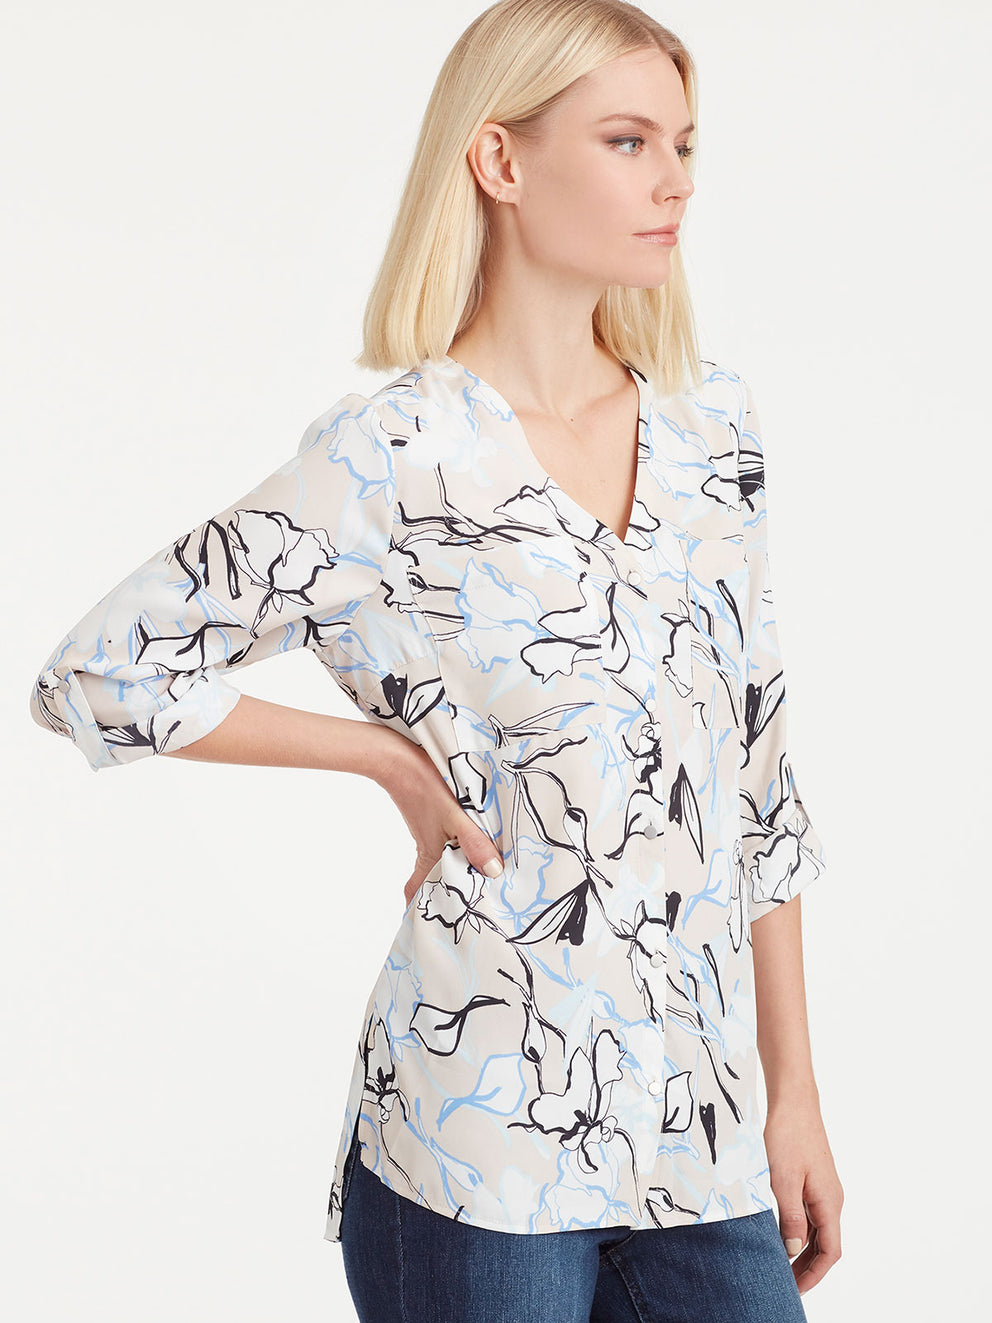 The Jones New York Utility Top in color Pebble Floral - Image Position 2